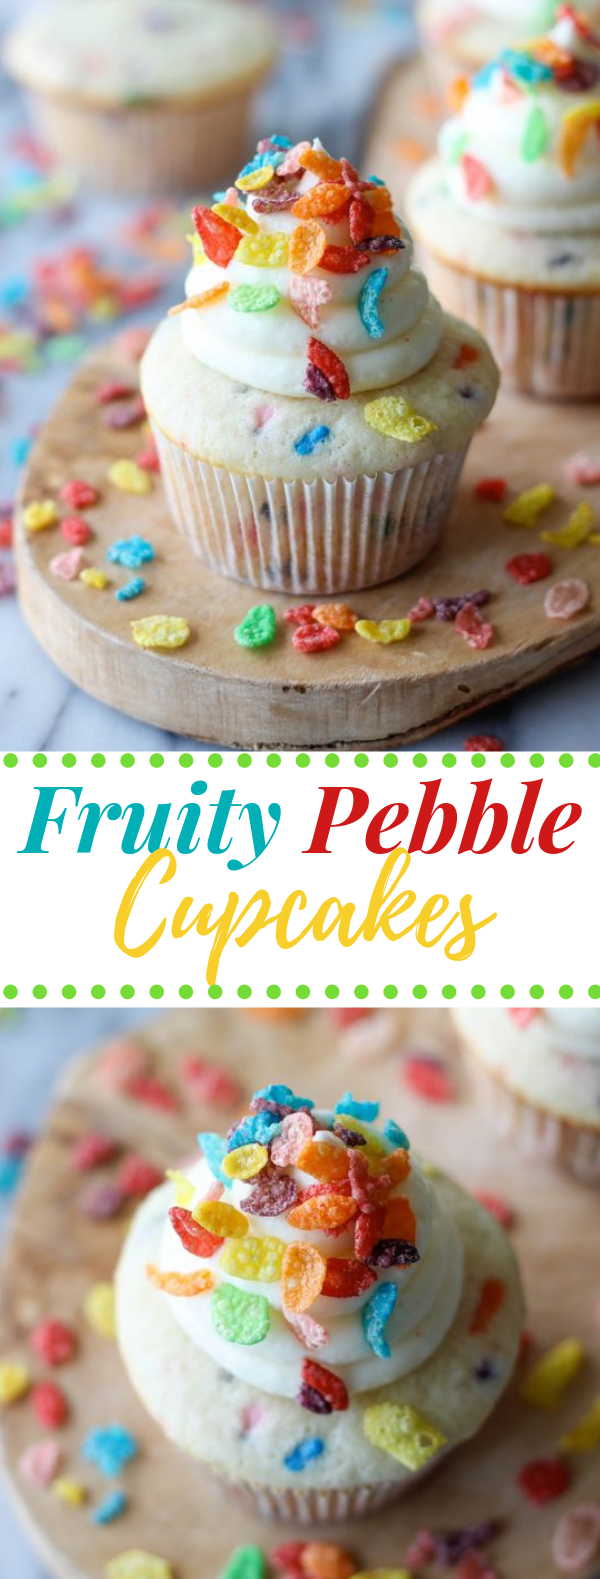 FRUITY PEBBLE CUPCAKES #dessert #recipe